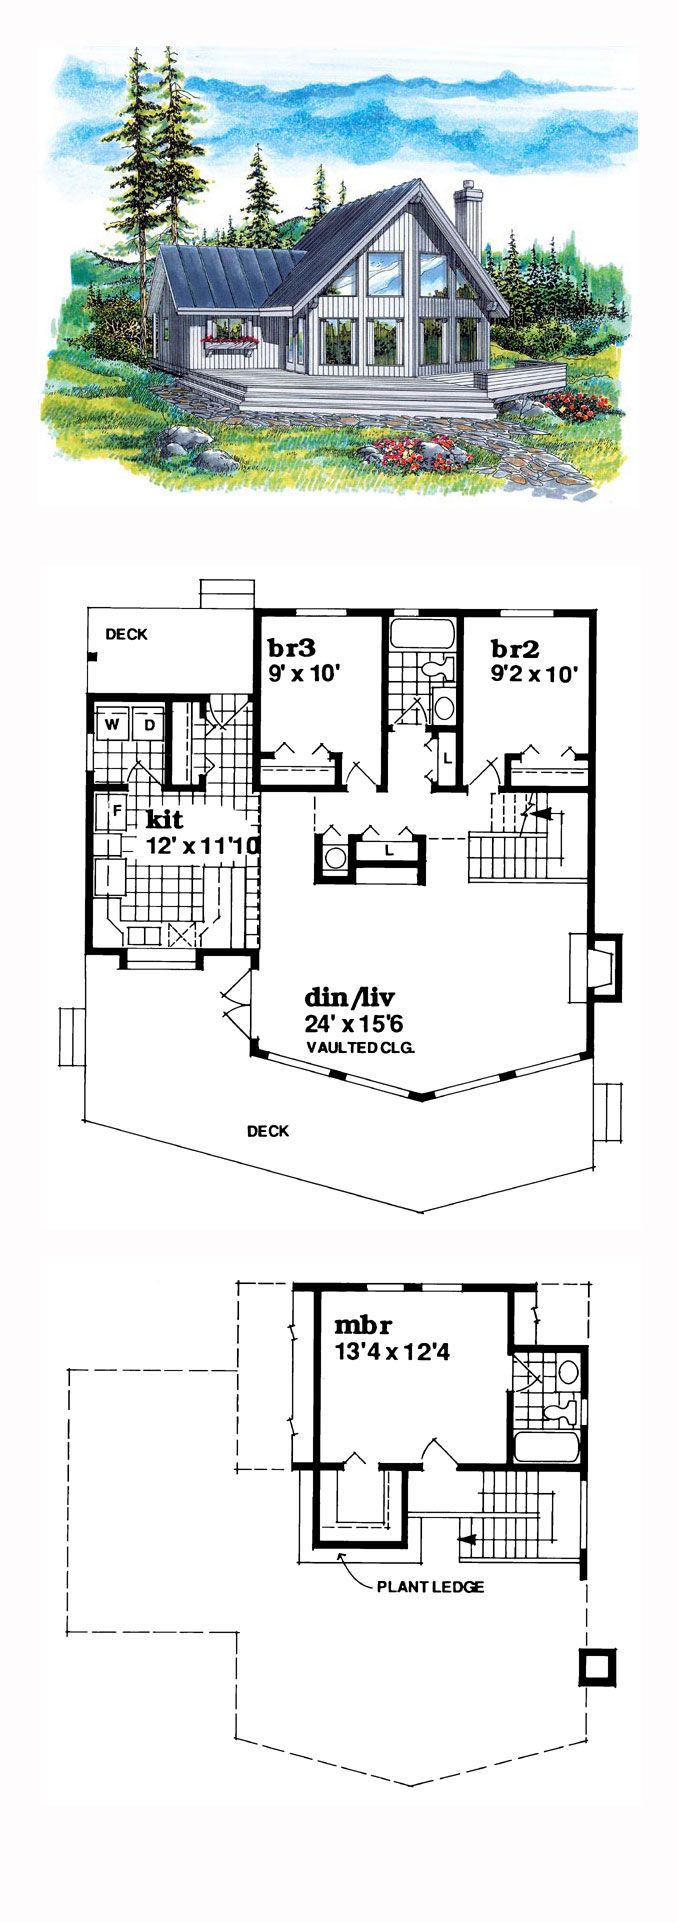 380 best house plans images on pinterest small houses cabin 380 best house plans images on pinterest small houses cabin plans and small house plans